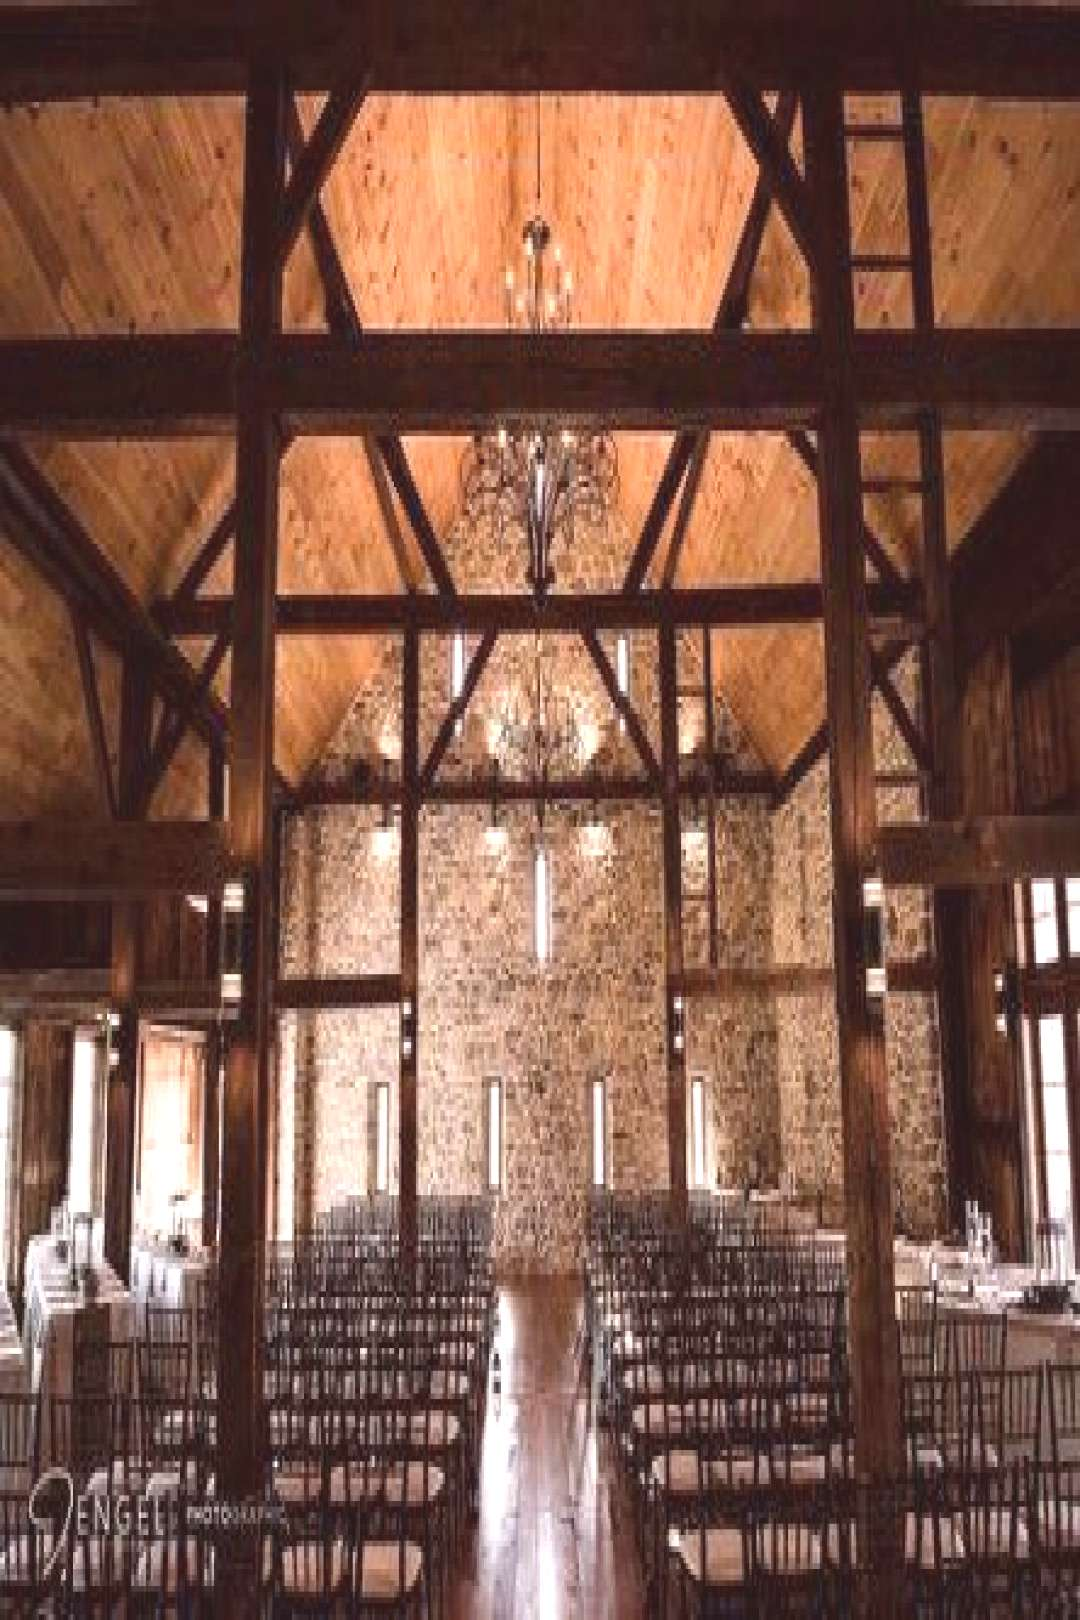 New Wedding Venues Pennsylvania Lancaster Pa Ideas wedding venues pennsy...#garden